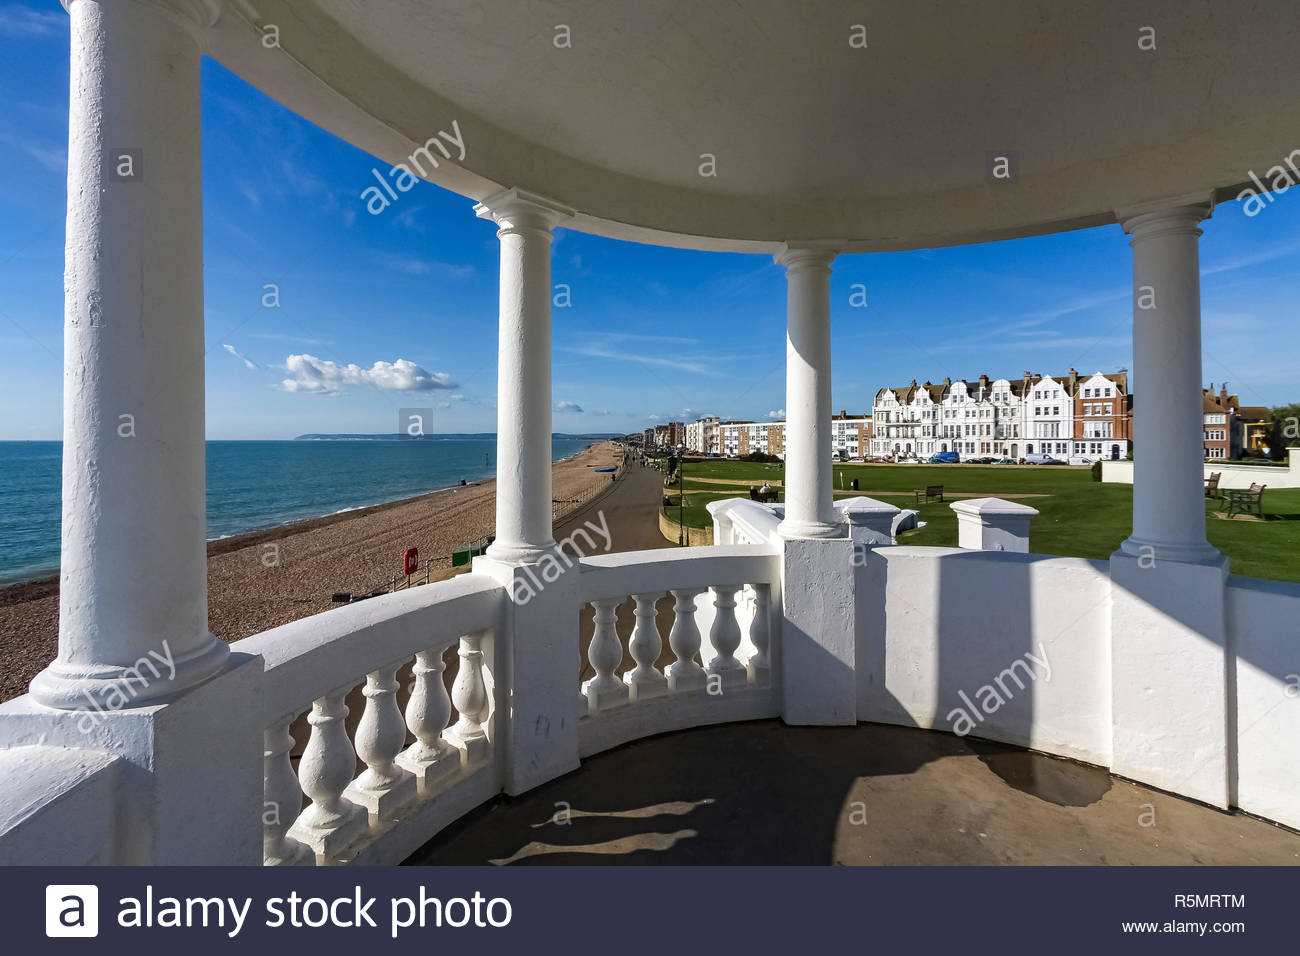 View from a Colonnade in the Grounds of the De la Warr Pavilion - Stock Image